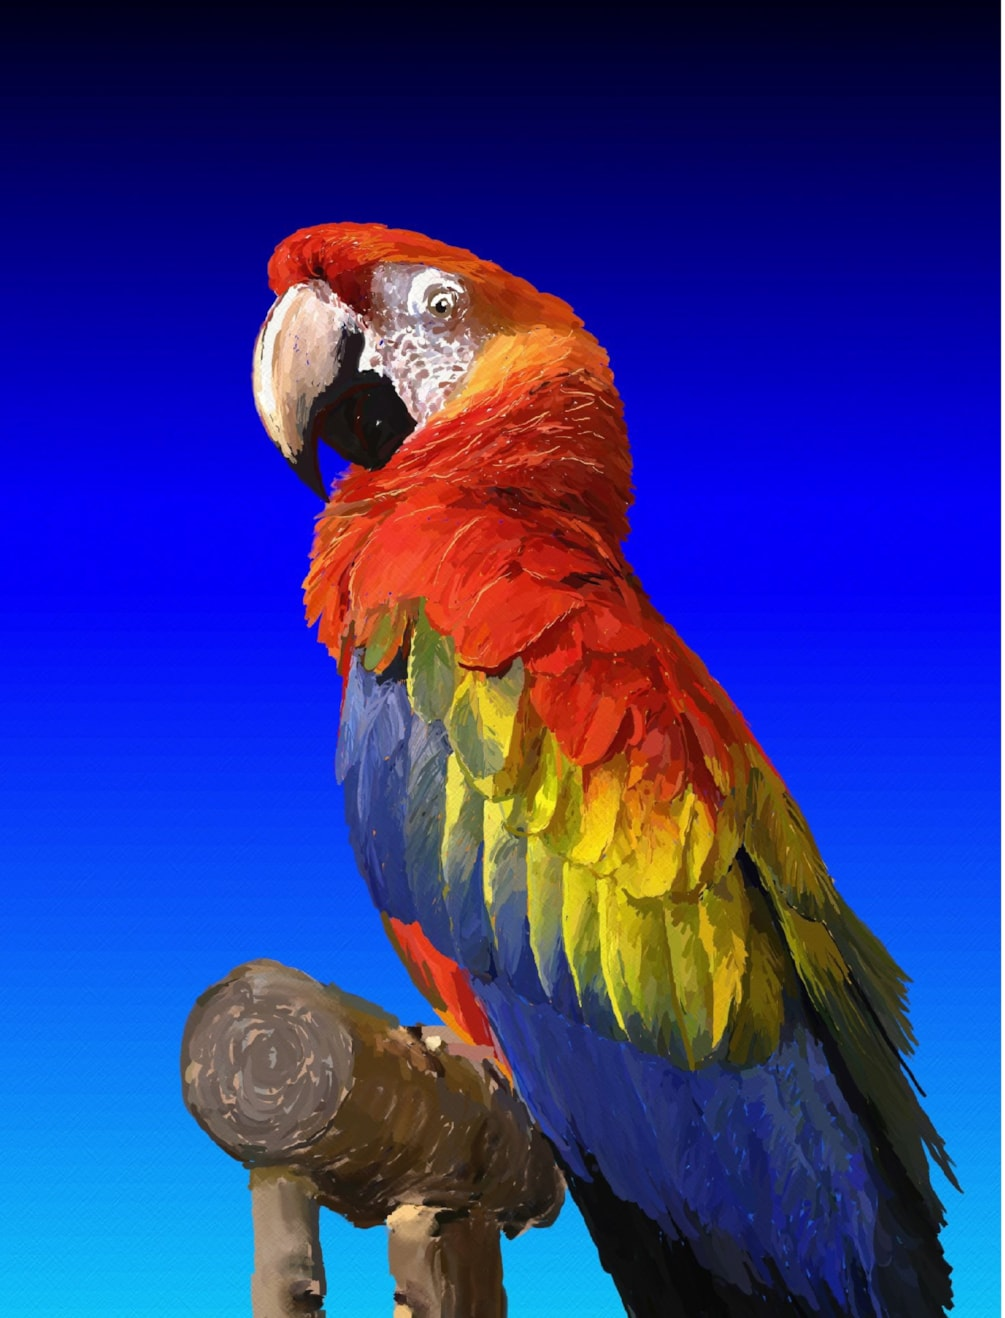 One More Macaw